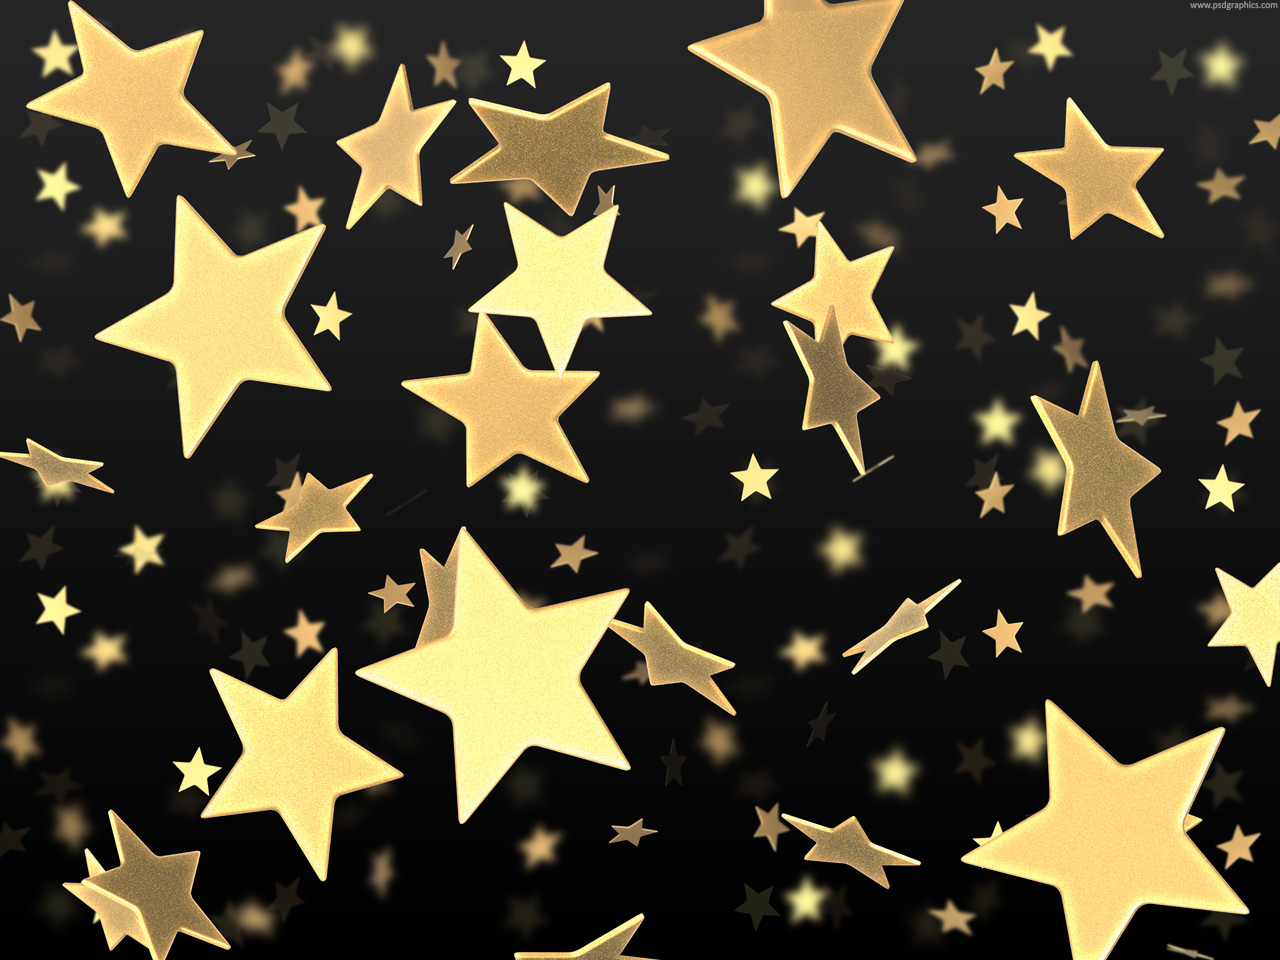 Party Theme Host An Academy Awards Night Party additionally Golden Stars On Black Background further Paparazzi Small likewise Sunday February 24th Bond Themed Academy Awards Pre Party Get 50 Off Tickets Now also 113802. on oscar night party theme ideas